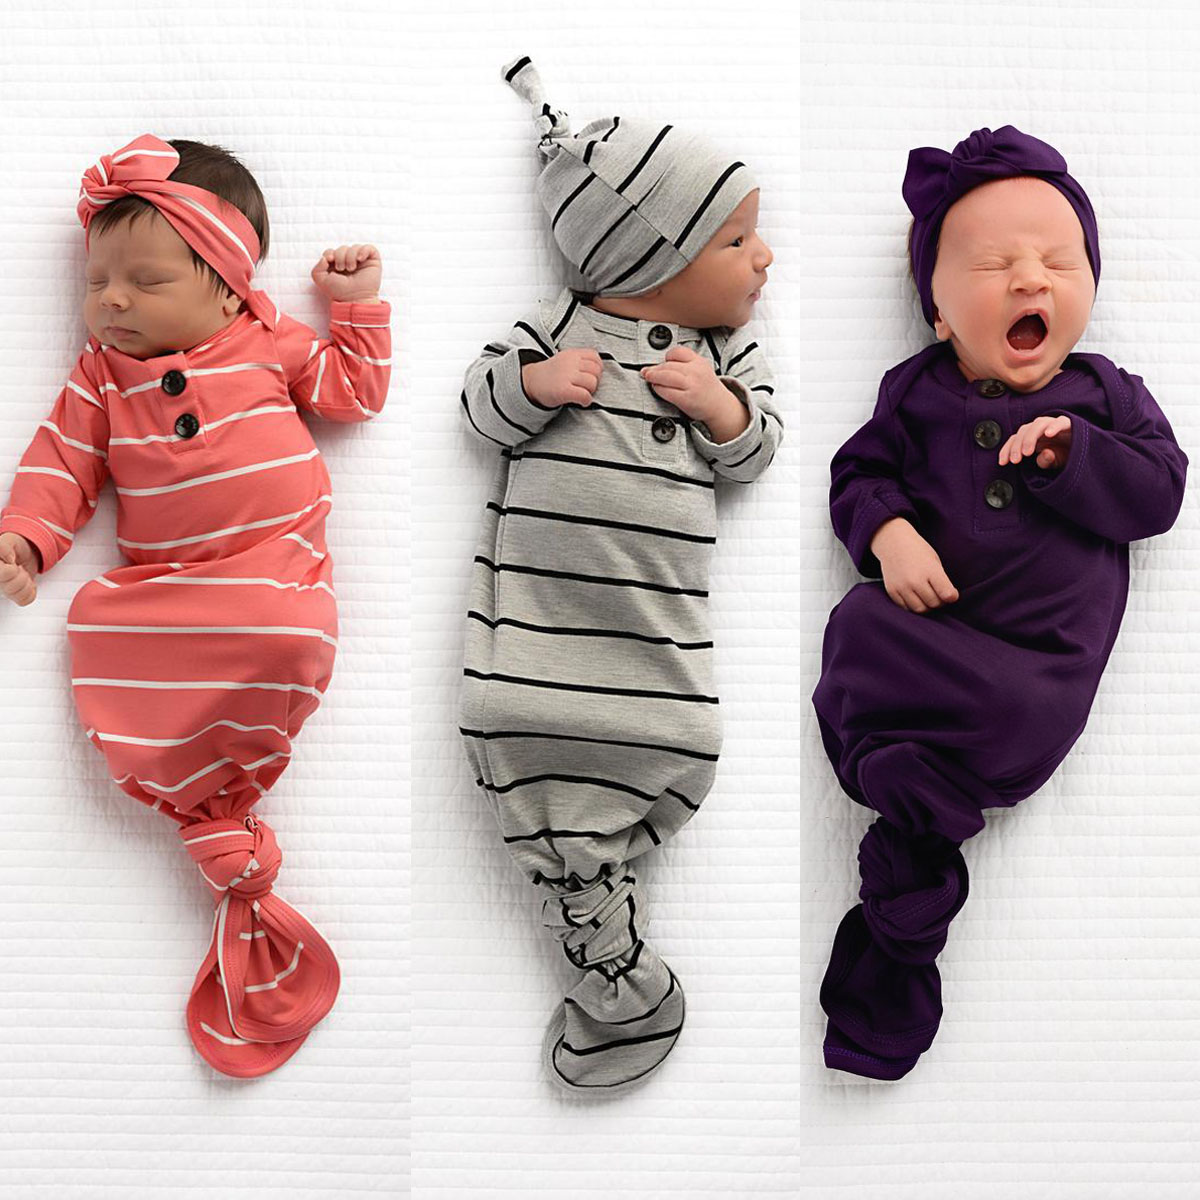 Pudcoco Newborn Baby Sleeping Bag Blanket Swaddle Wrap Bedding Clothes Hat Outfit